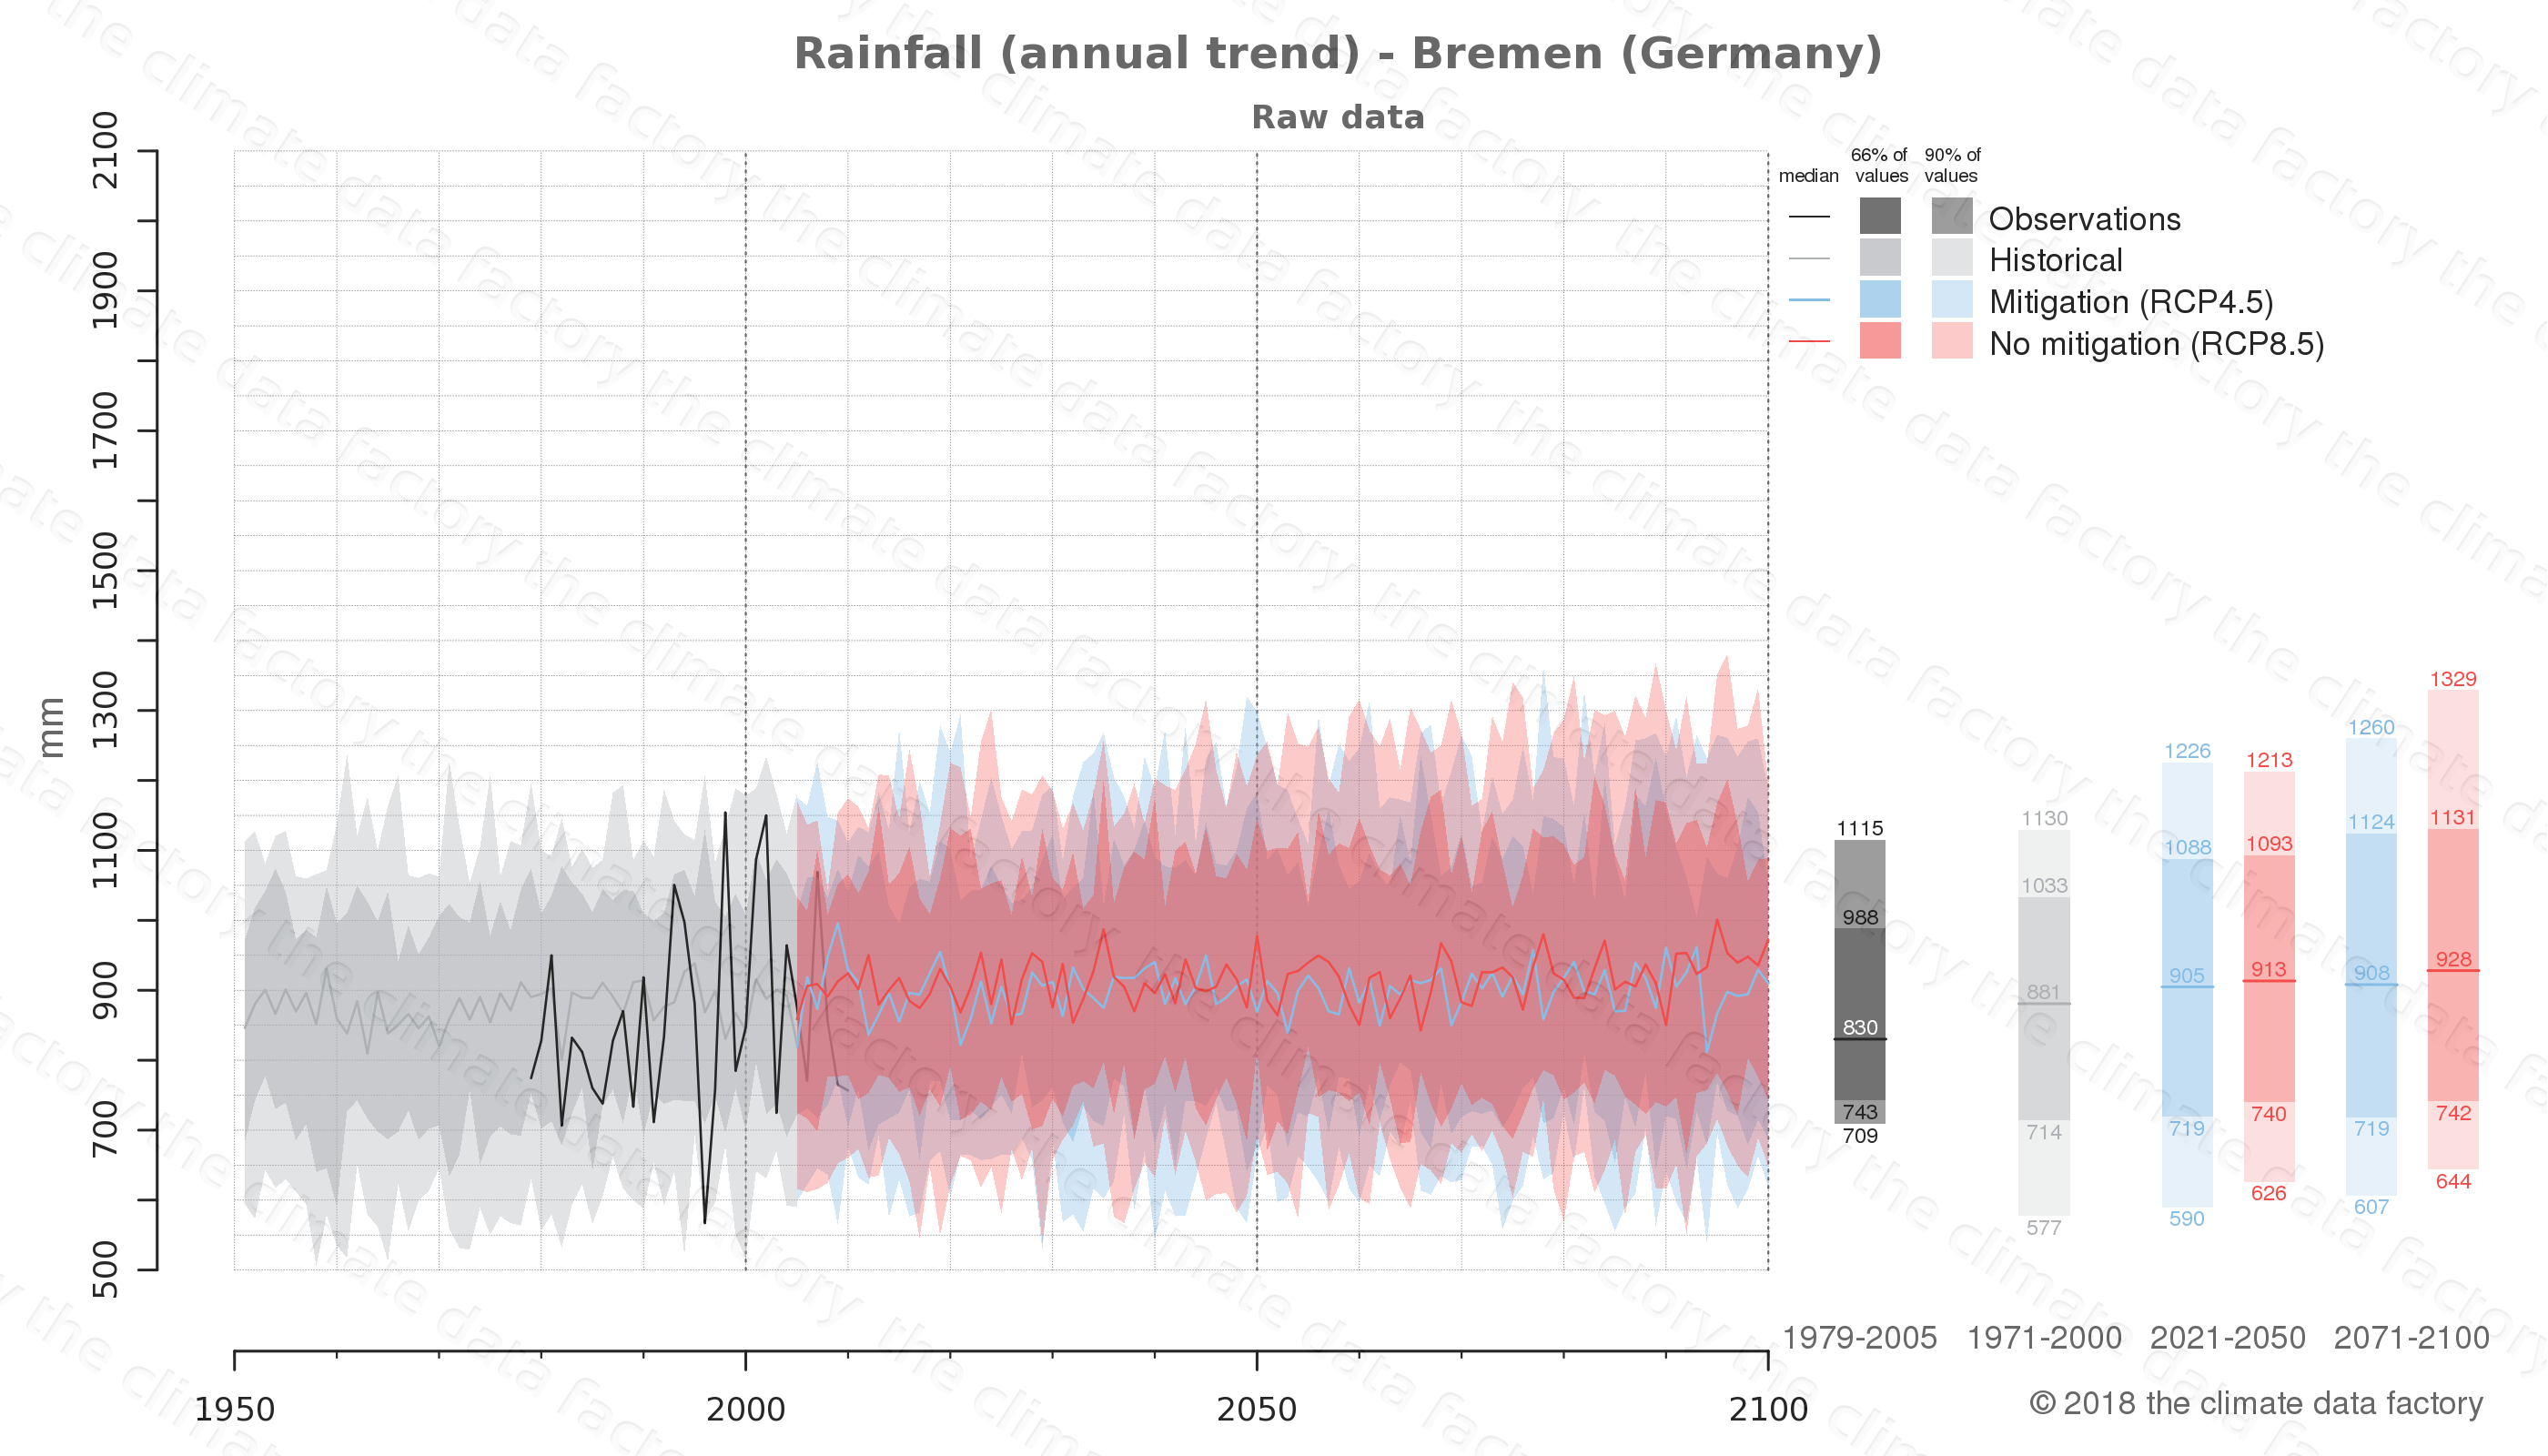 climate change data policy adaptation climate graph city data rainfall bremen germany